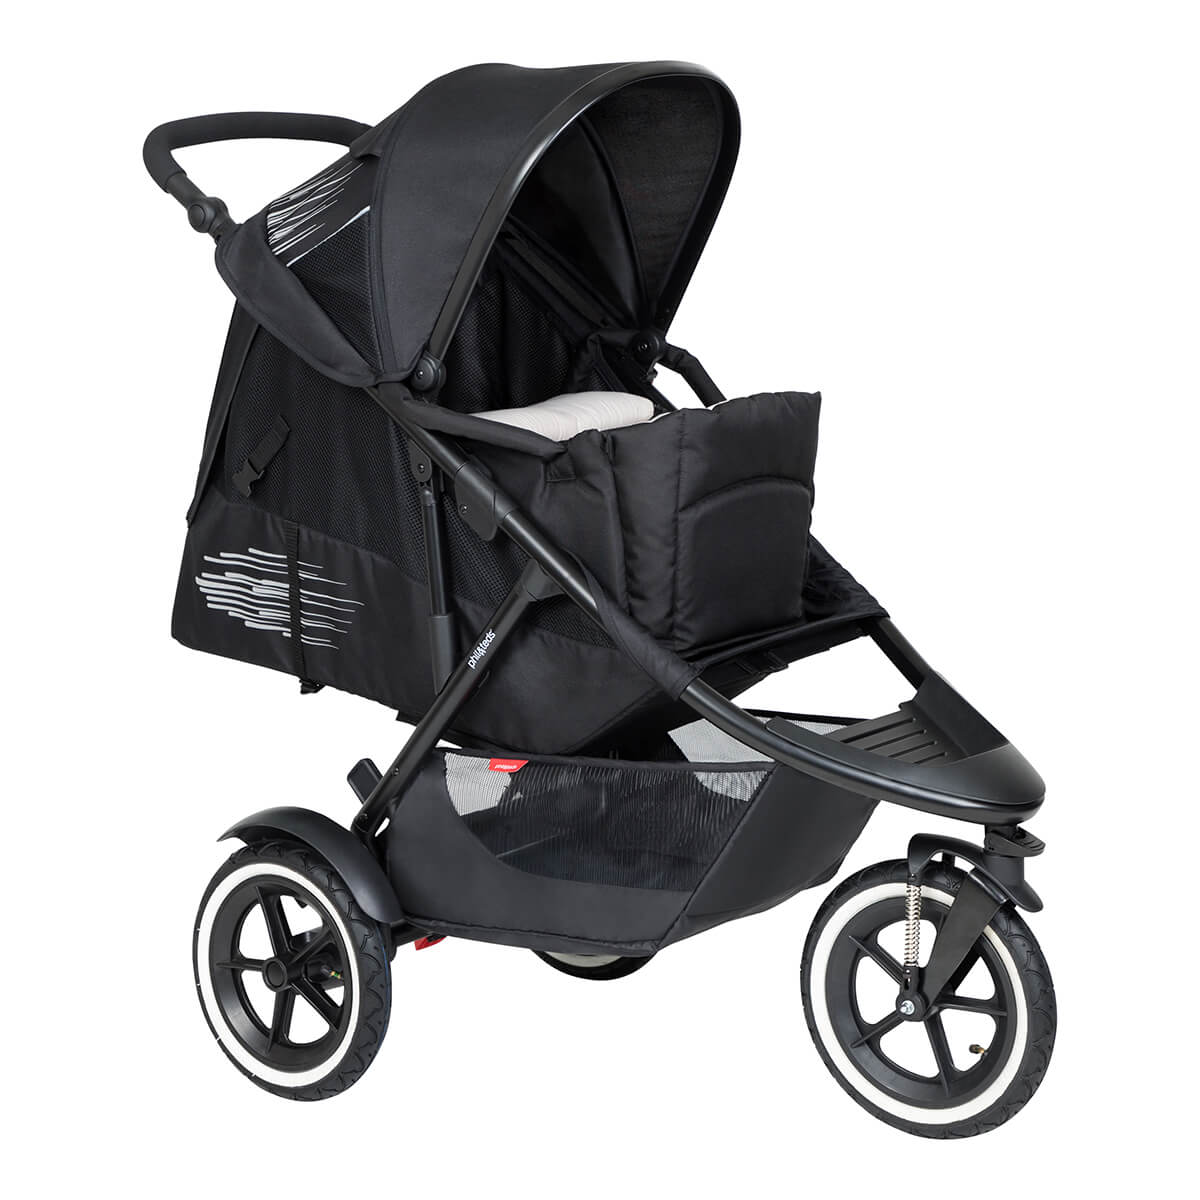 https://cdn.accentuate.io/4467127091253/19118870331445/philteds-sport-buggy-with-cocoon-full-recline-v1626403834665.jpg?1200x1200